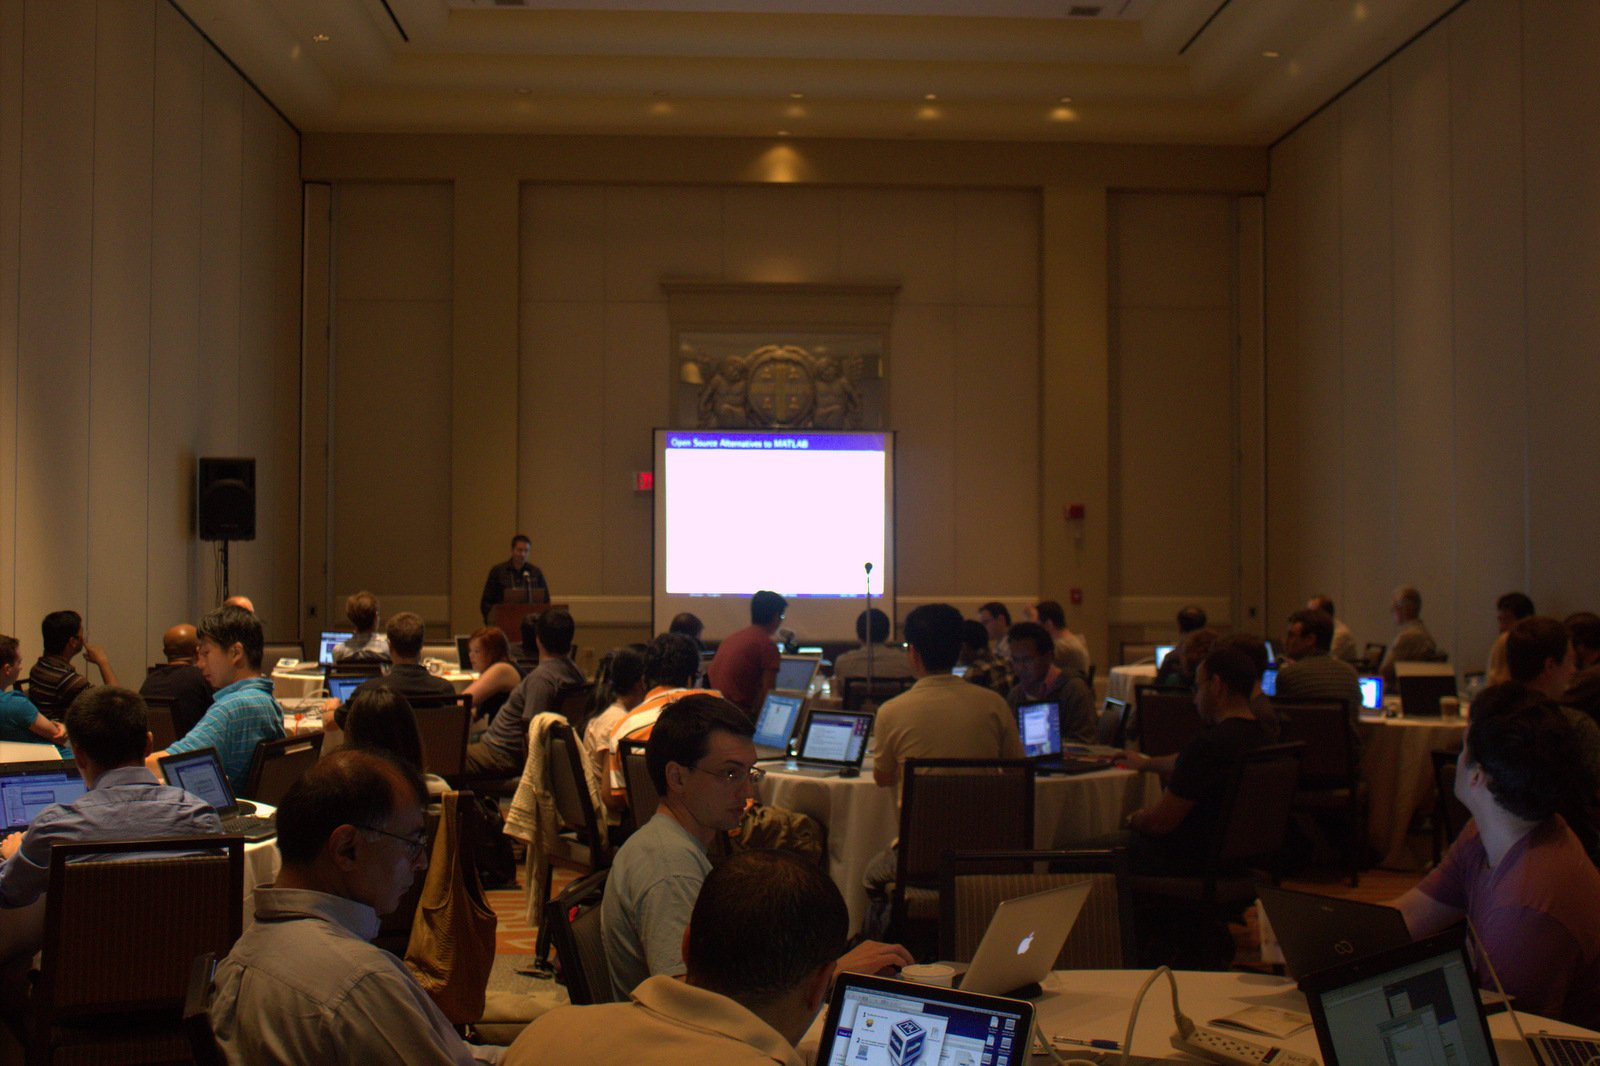 Kitware presents 'Python for Matlab Users' tutorial at CVPR